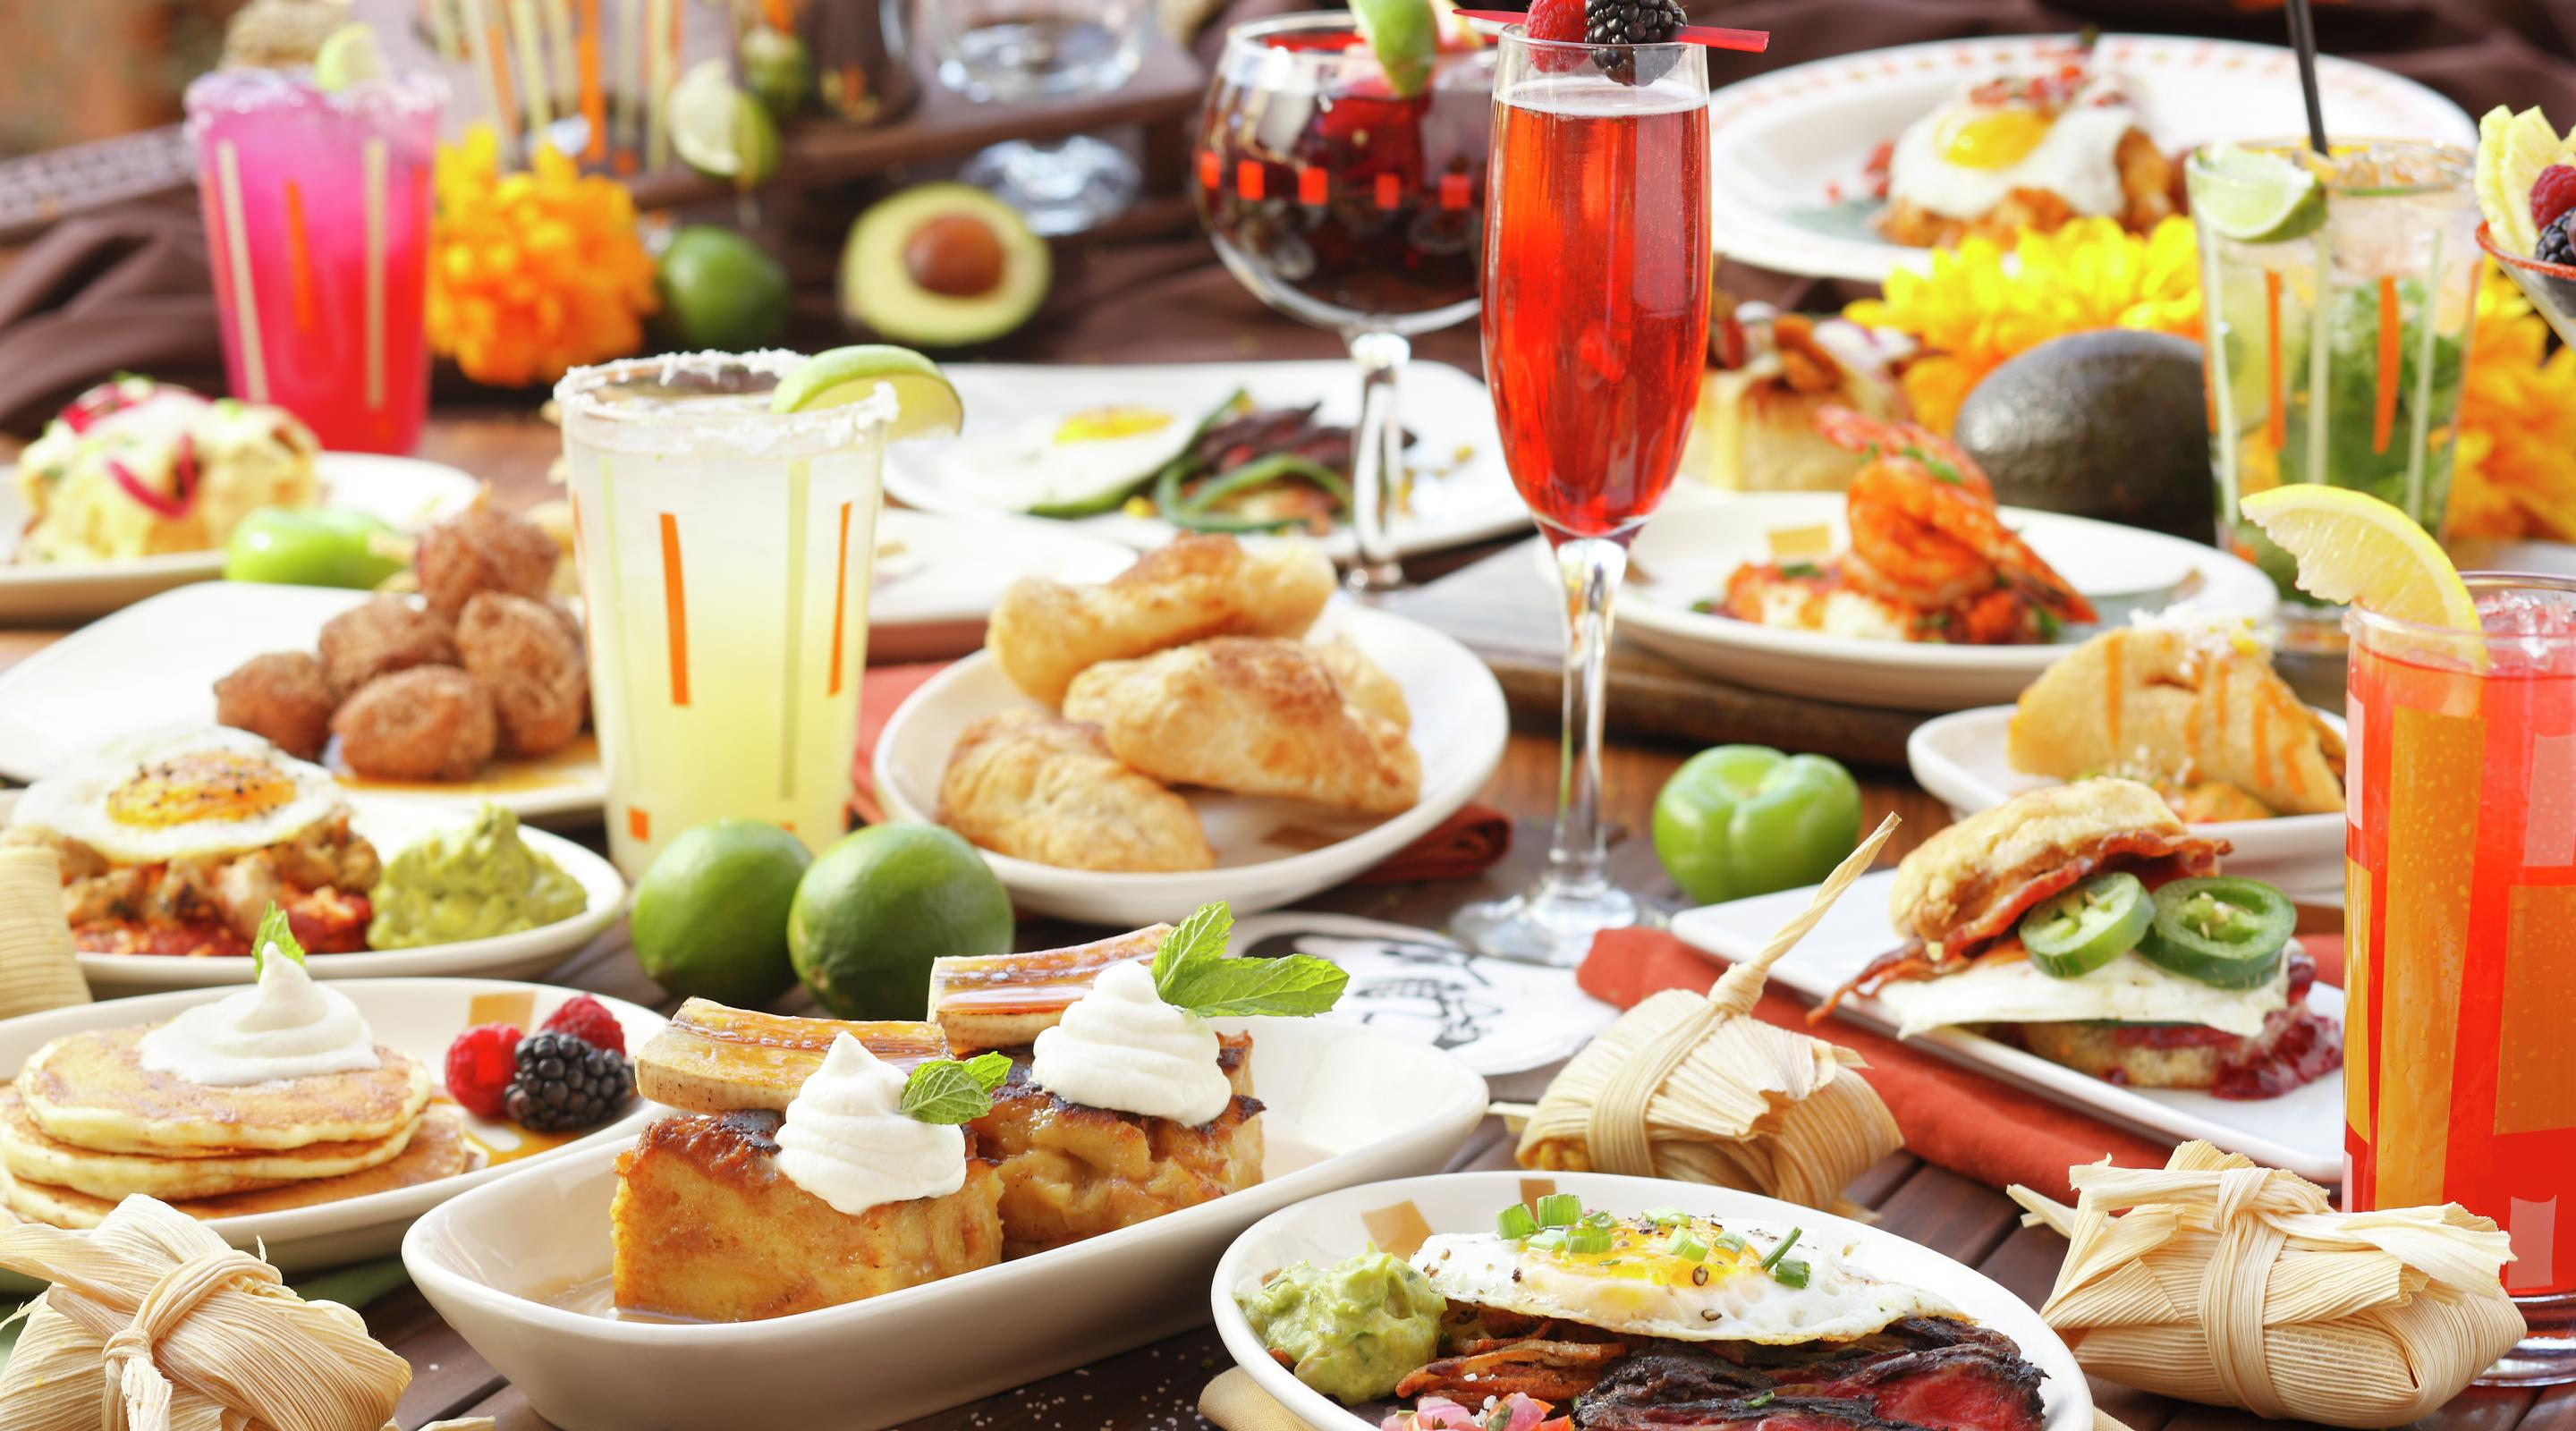 Border Grill offers all you can eat small plates brunch and add bottomless mimosas for the ultimate brunch experience